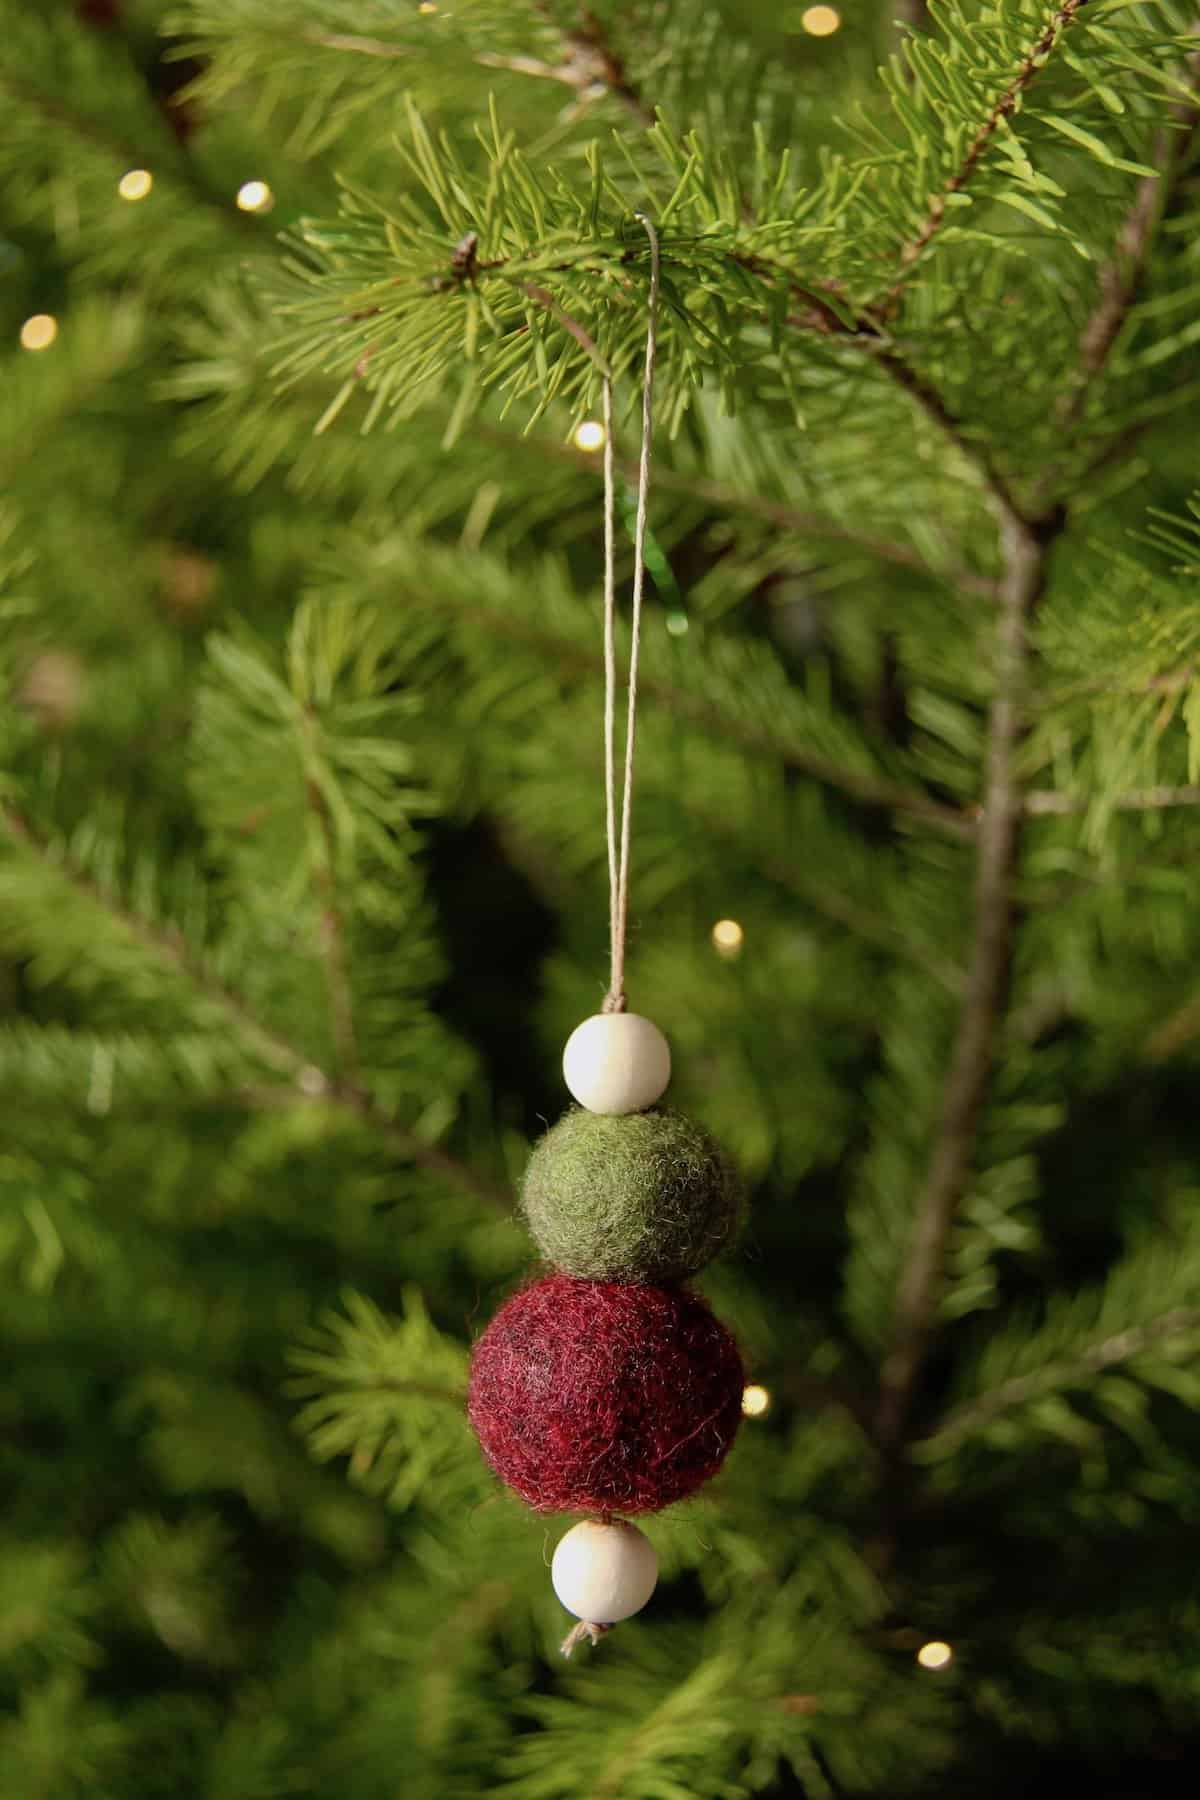 Learn how to make felt ornaments with this easy-to-follow Christmas craft tutorial! These felted ornaments are perfect for a rustic farmhouse Christmas! #rusticChristmas #handmadeChristmas #feltedChristmas #Christmasfelting